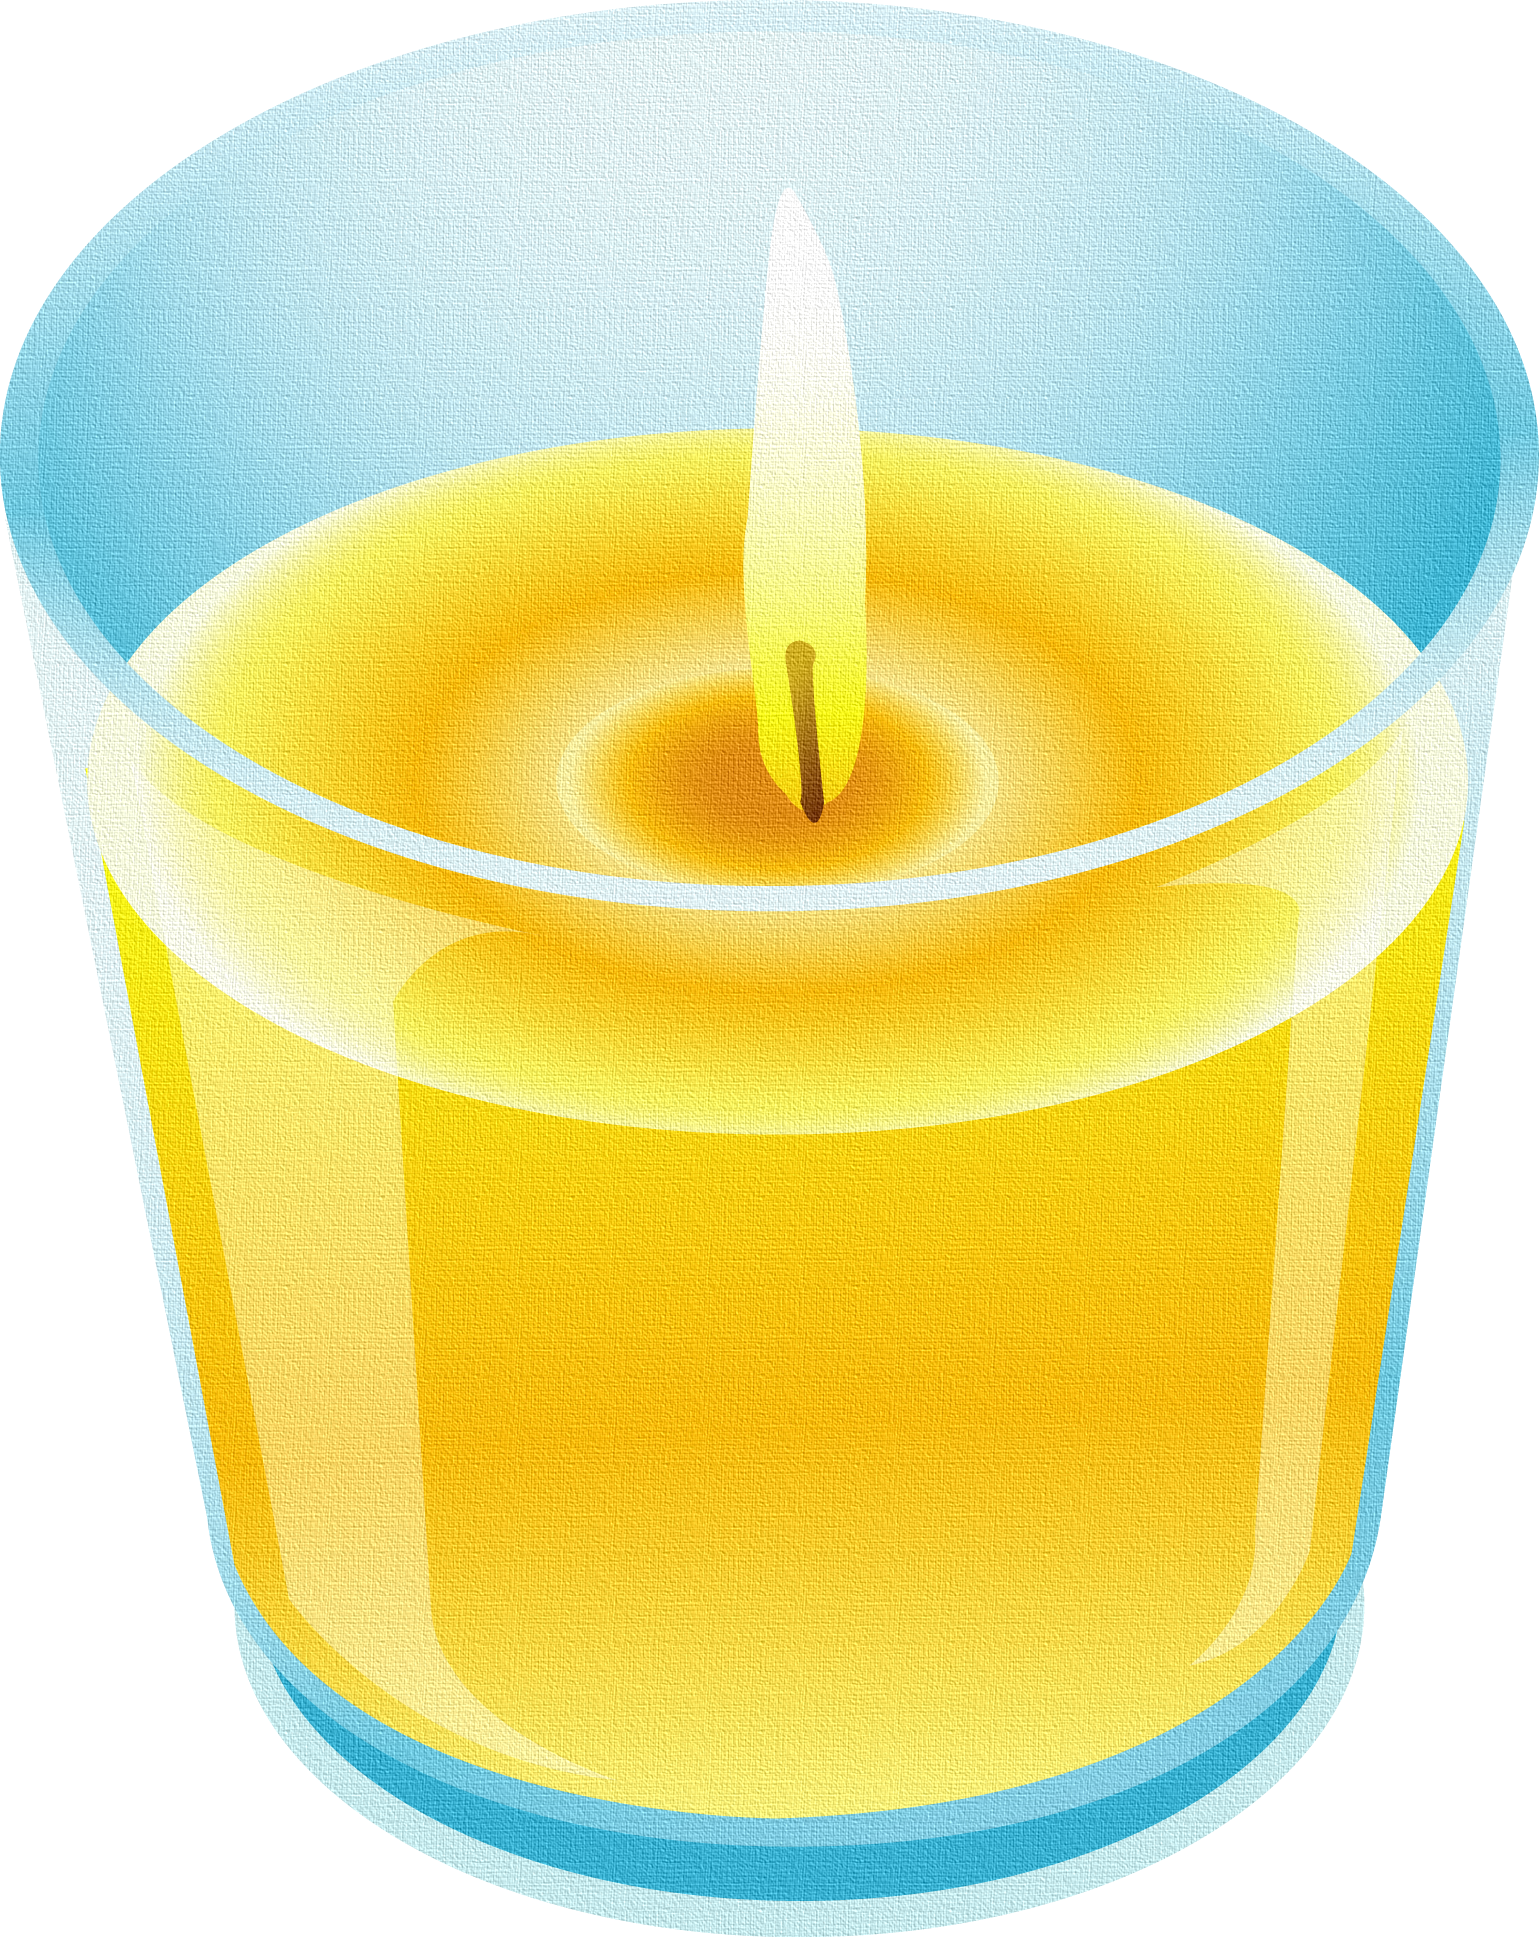 Candles Flameless Votive Lighting Candle Yankee PNG Image